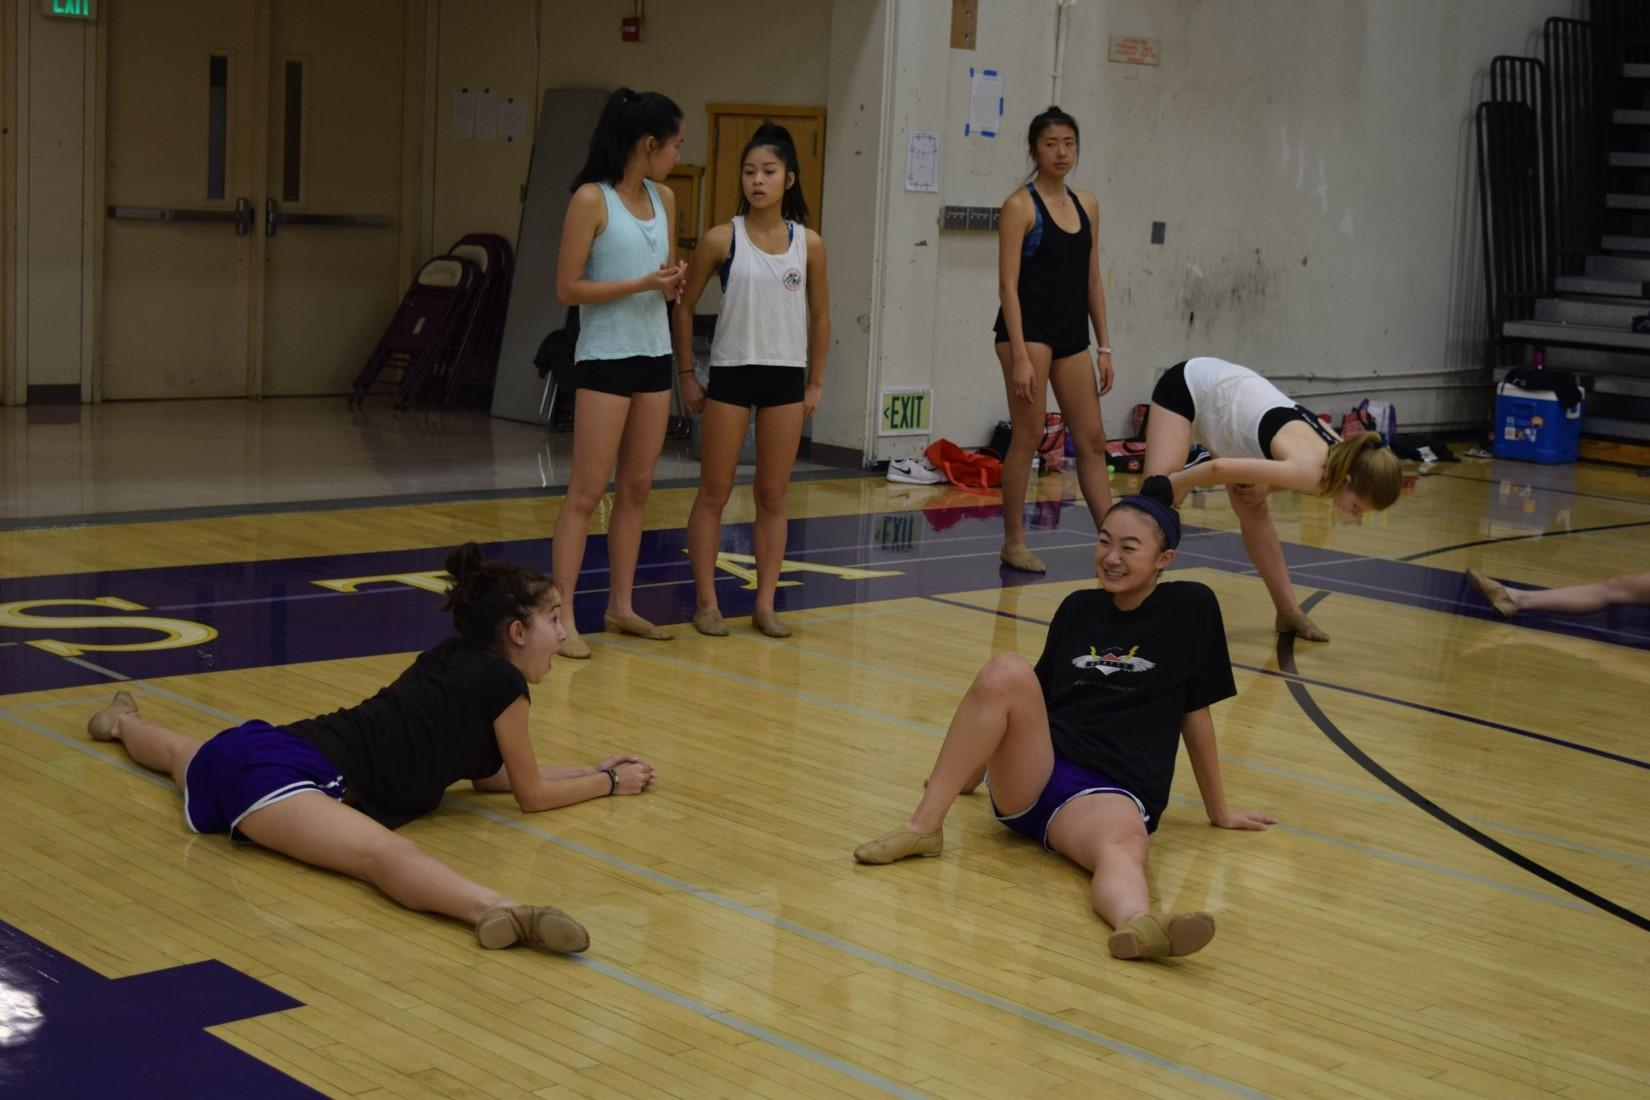 Sprawled out across the gym floor, dancers juniors Nicole Pound and Erin Lewis stretch as they chat with each other. Dancers waiting their turn frequently spent their time stretching to keep their muscles warm.